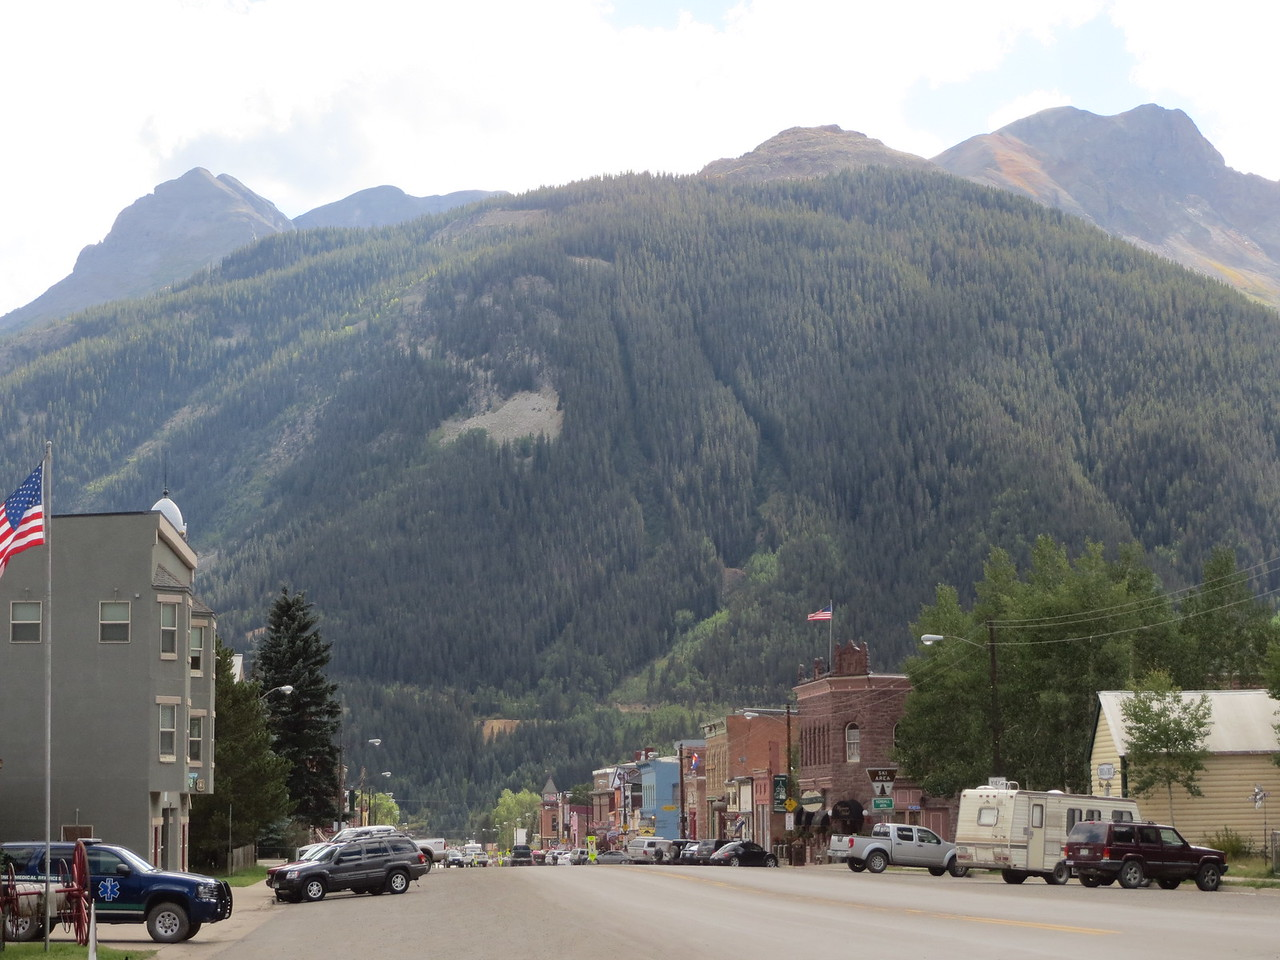 Day 4 (357 miles): Downtown Silverton CO